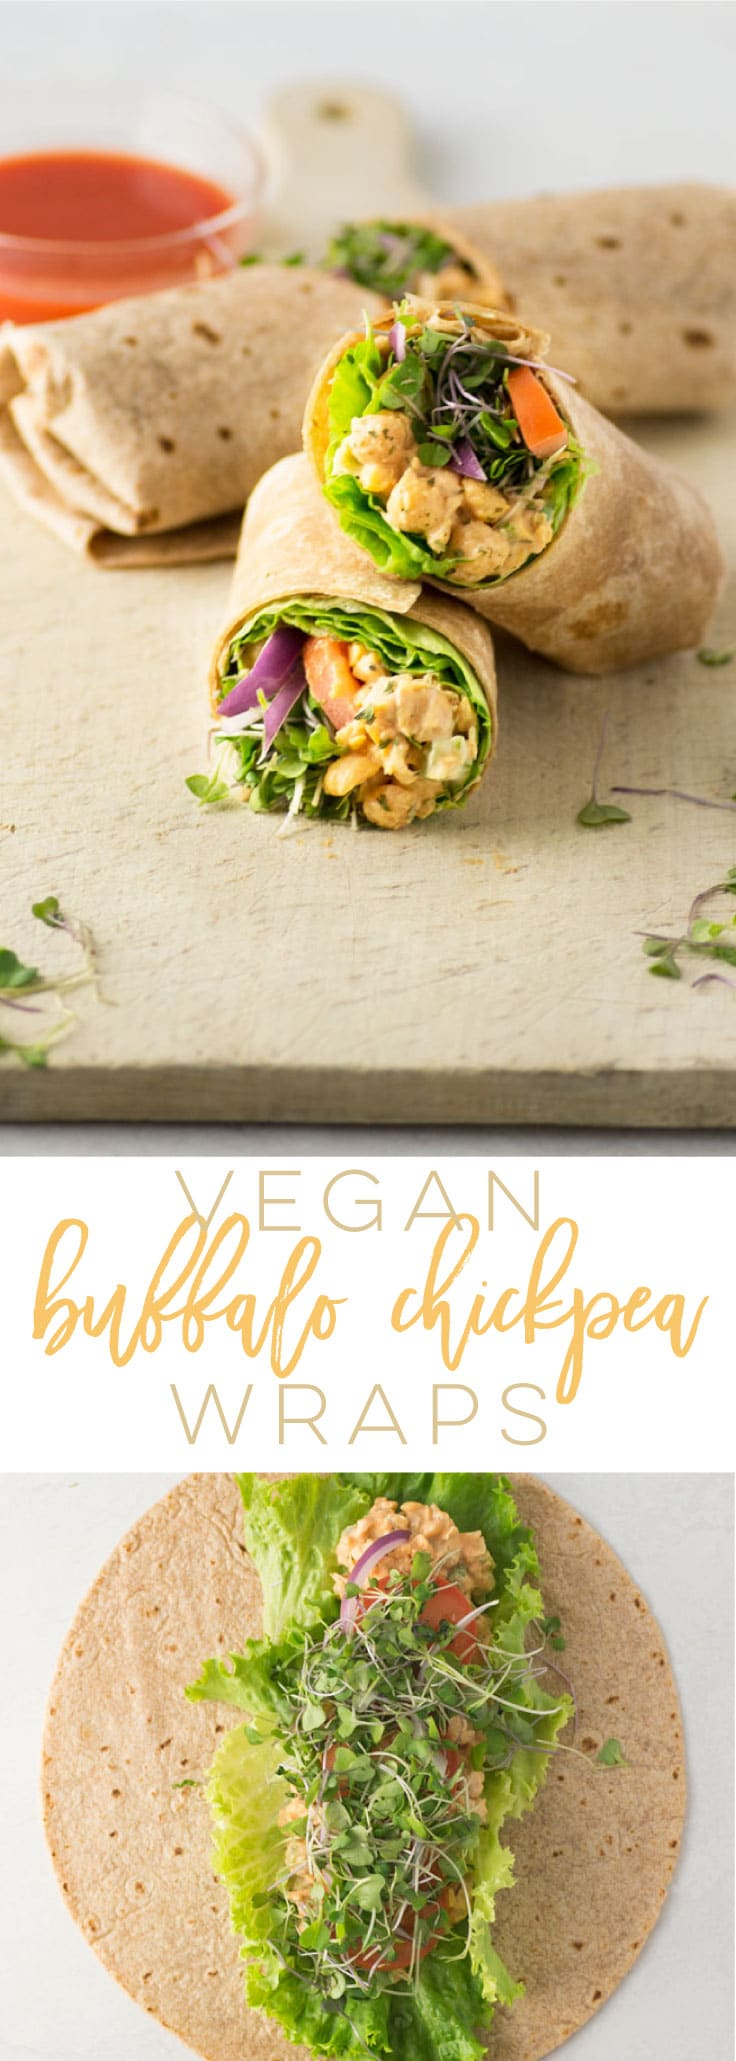 Vegan Buffalo Chickpea Wraps -- Buffalo chickpea salad makes the best vegan sandwich filler! A creamy salad with a punch of hot sauce, this recipe is the best for a vegan lunch. #vegan #lunch #chickpeas #hotsauce #plantbased | Mindful Avocado